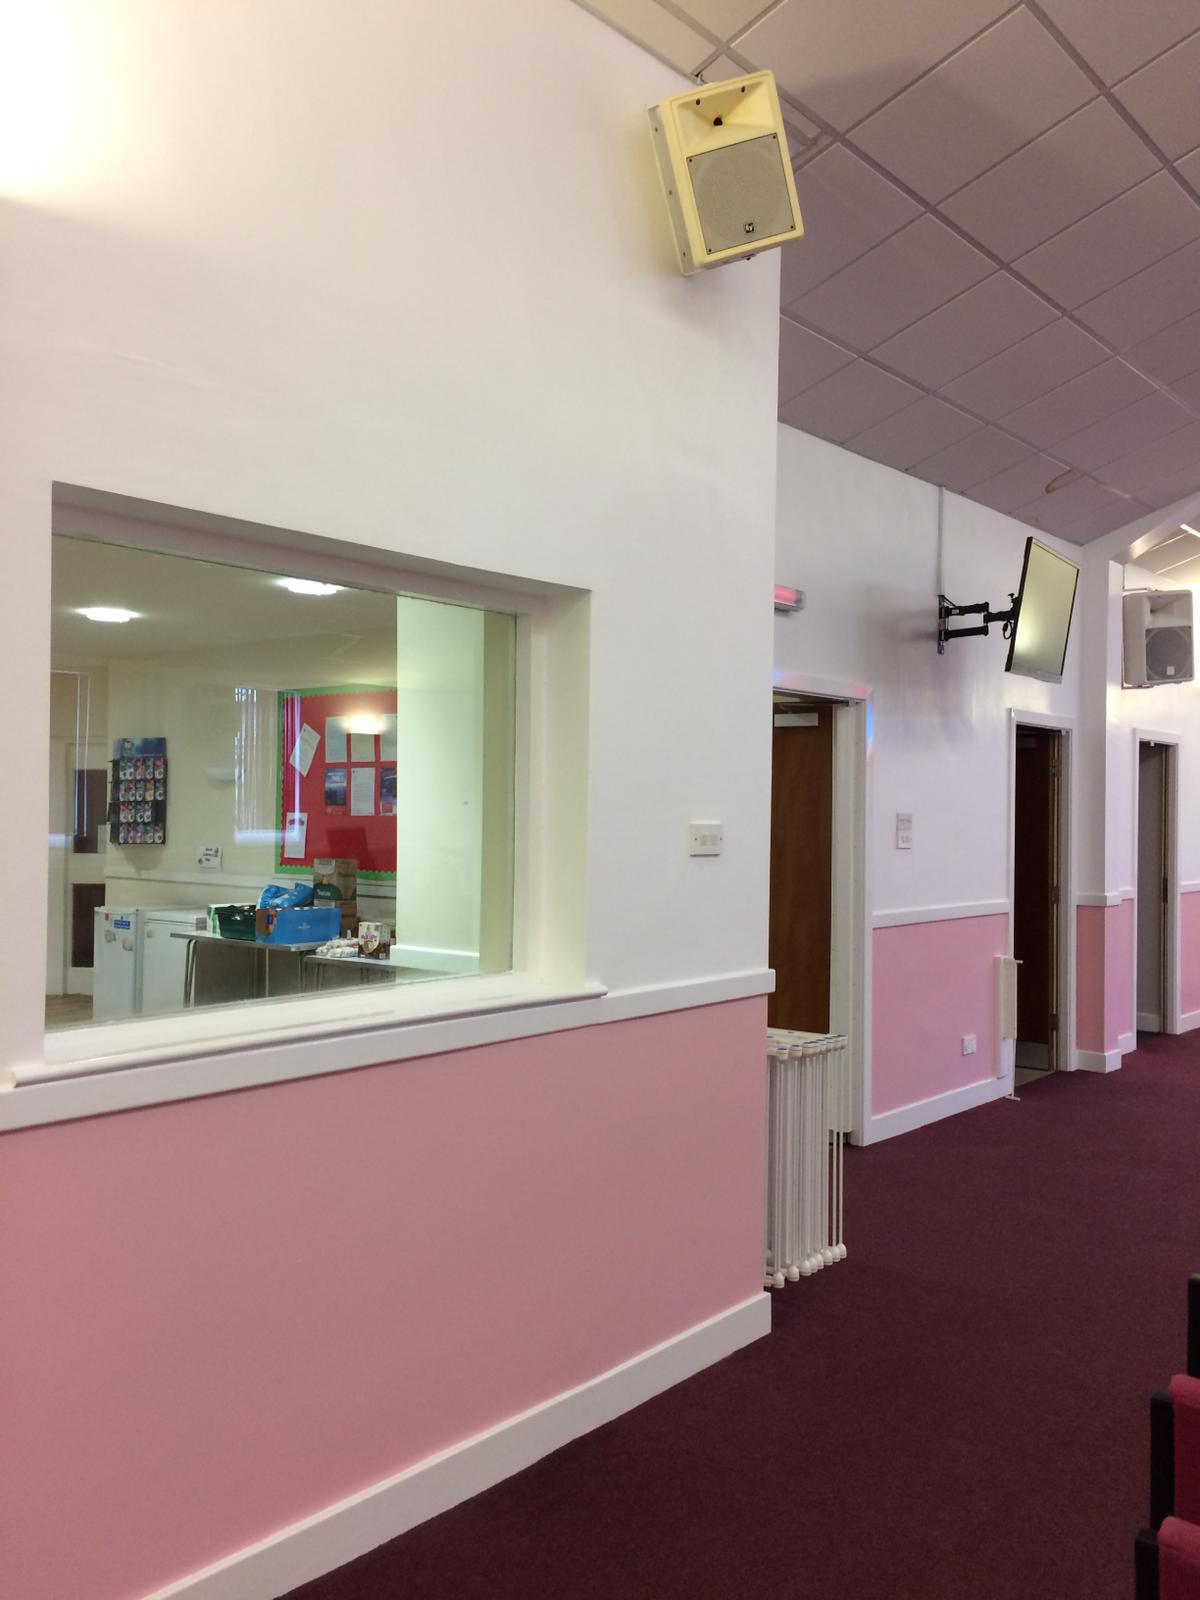 Detention Centre Painting & Decorating Services